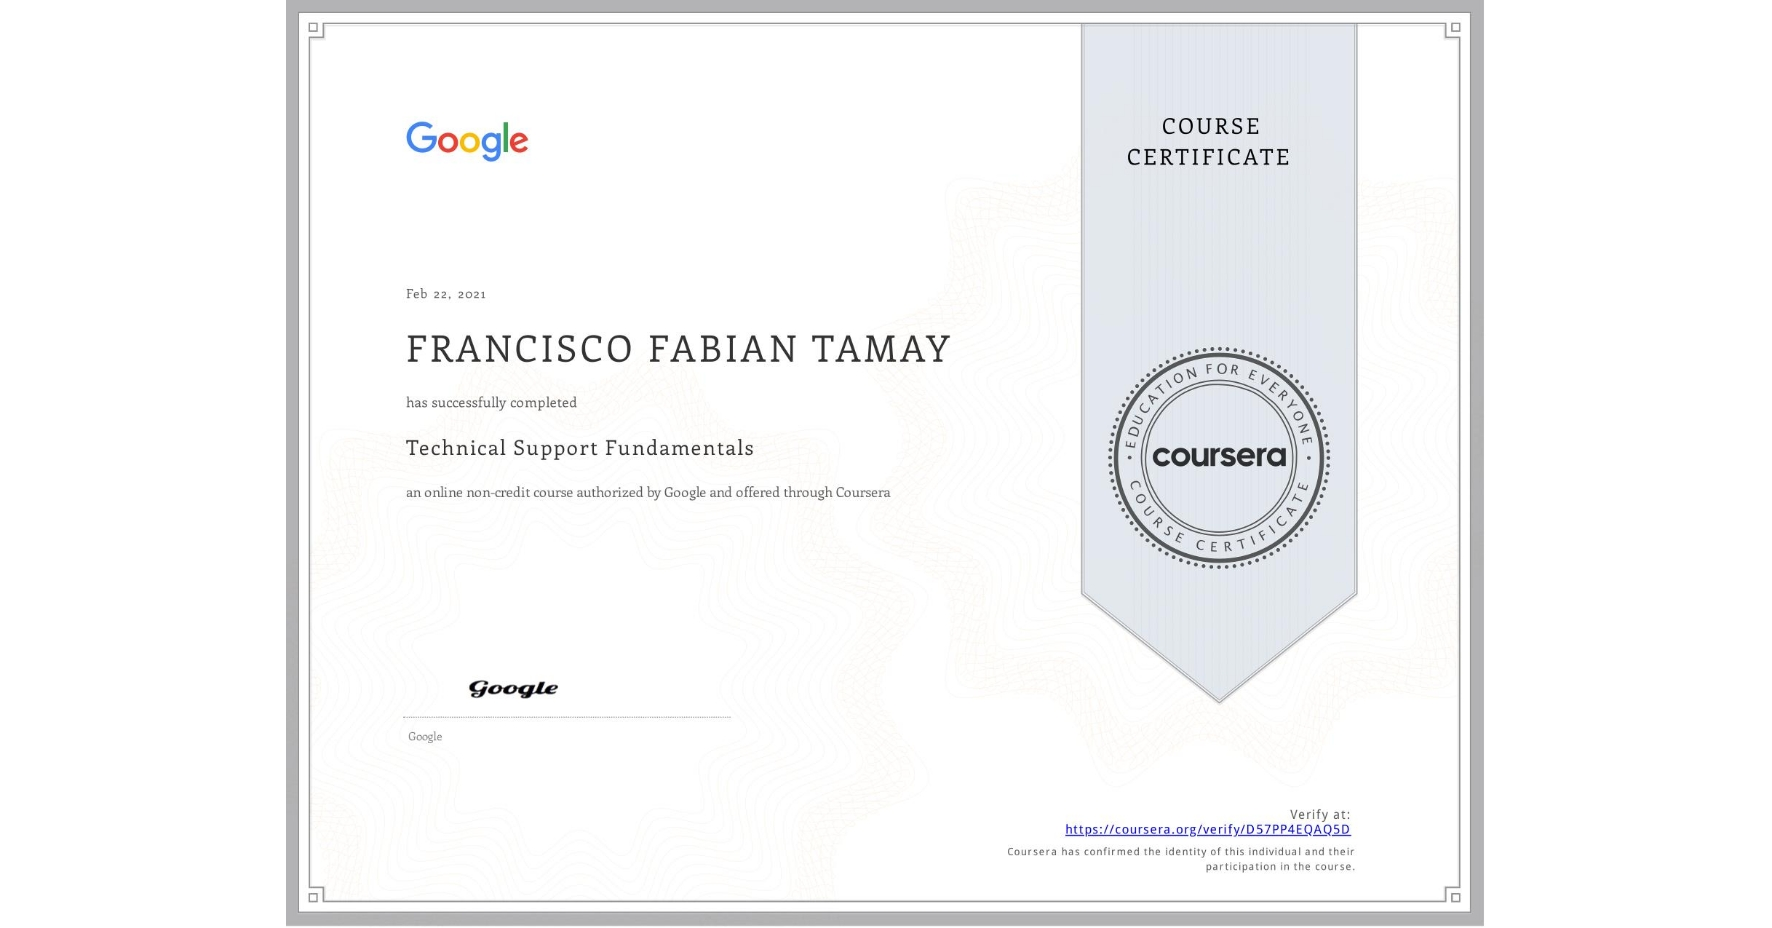 View certificate for FRANCISCO FABIAN  TAMAY, Technical Support Fundamentals, an online non-credit course authorized by Google and offered through Coursera